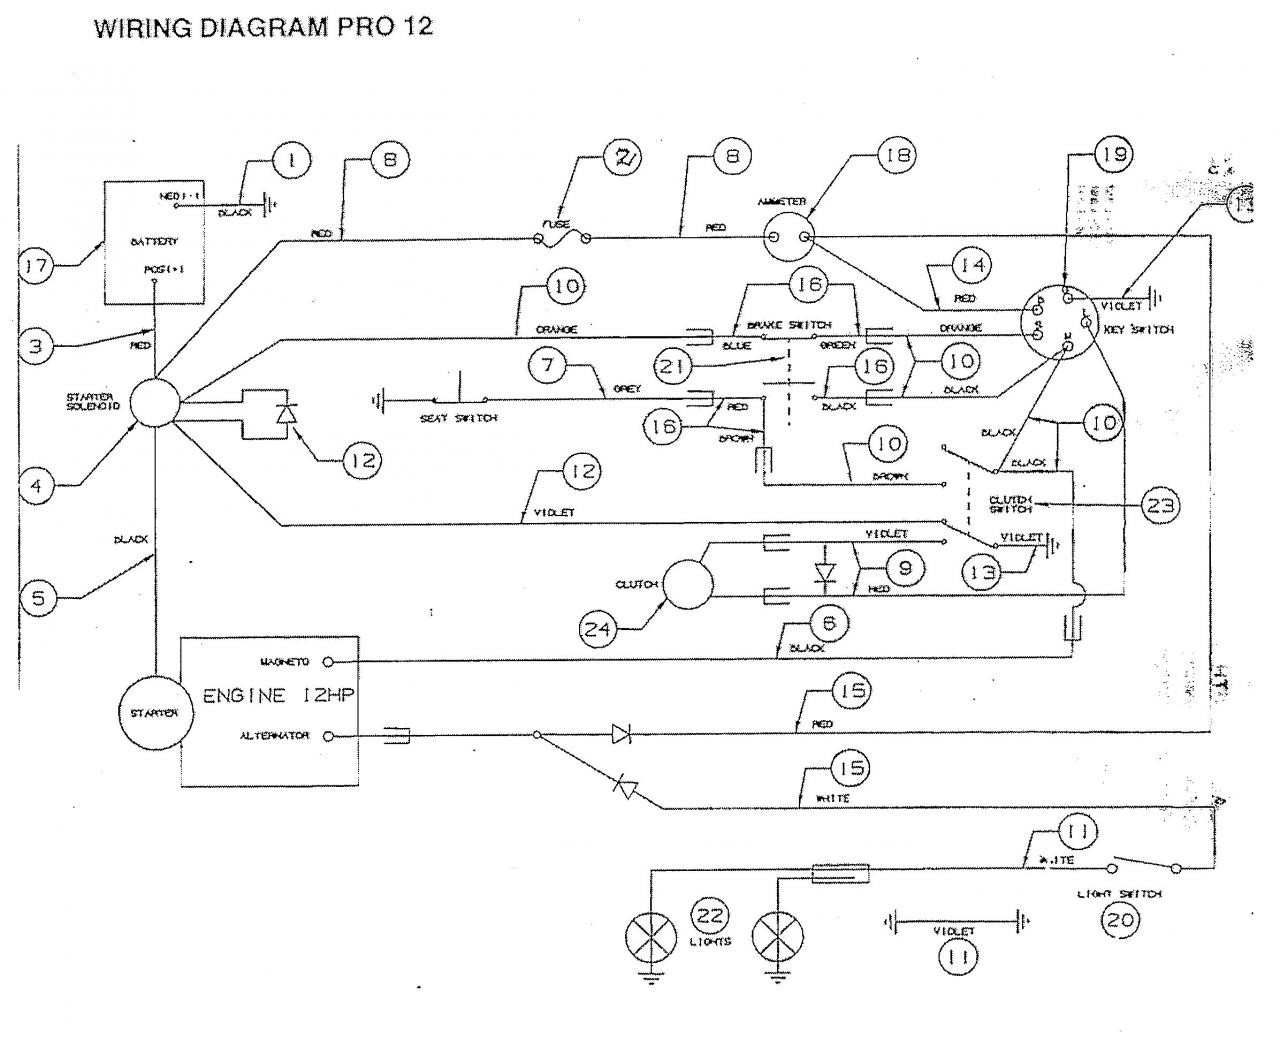 Briggs and Stratton Wiring Diagram 12 Hp Briggs & Stratton 12hp I C for Victor Pro 12 Ride Outdoorking Repair forum Of Briggs and Stratton Wiring Diagram 12 Hp